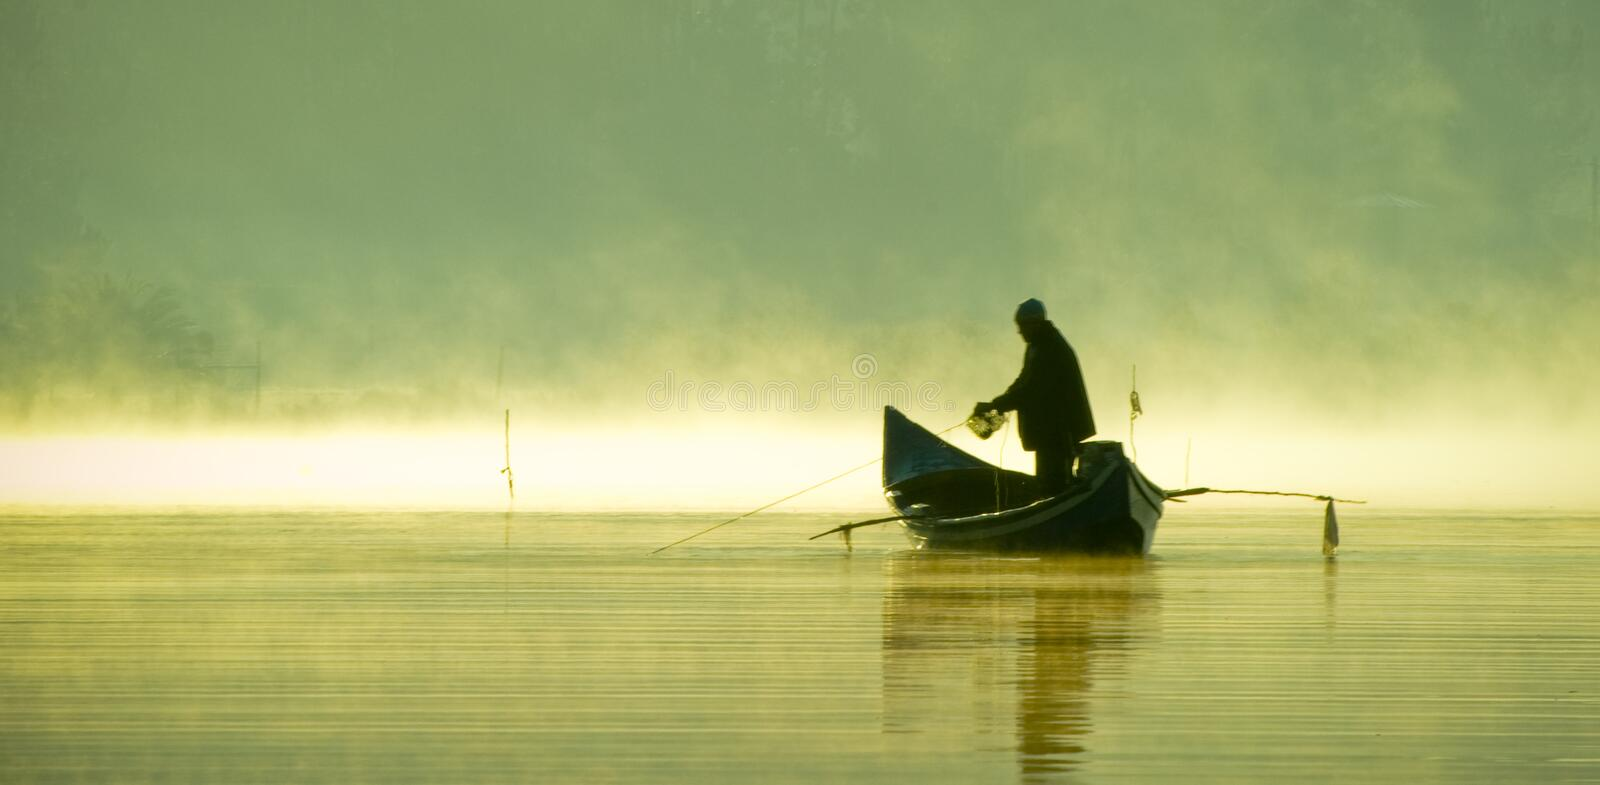 Fisherman on a boat silhouette royalty free stock photography